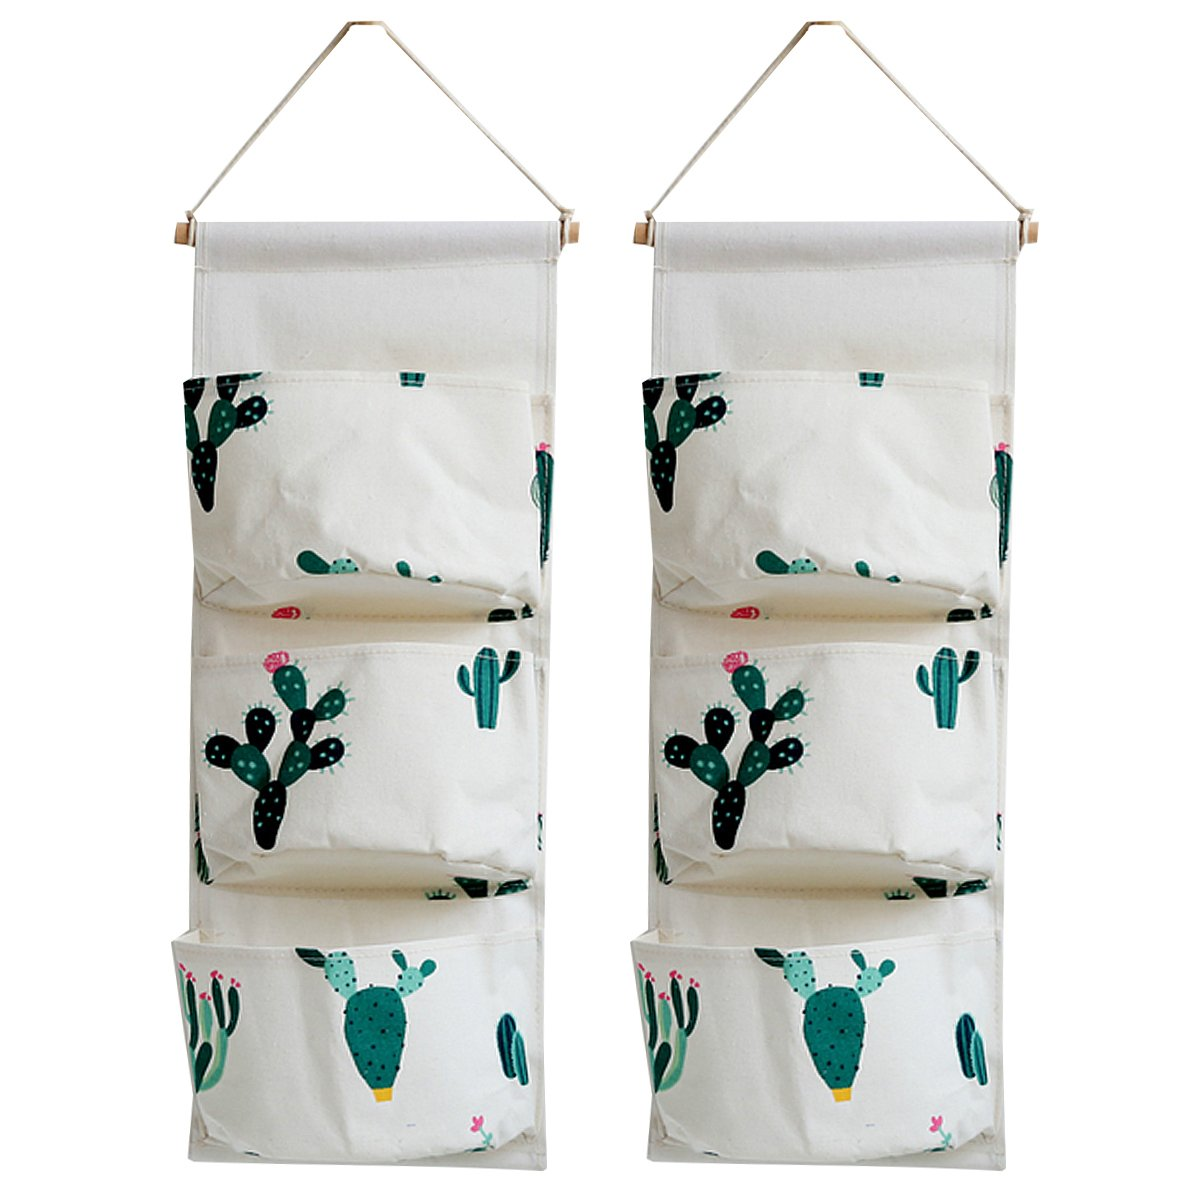 Mily Over The Door Closet Organizer 2 Packs Wall Hanging Storage Bags